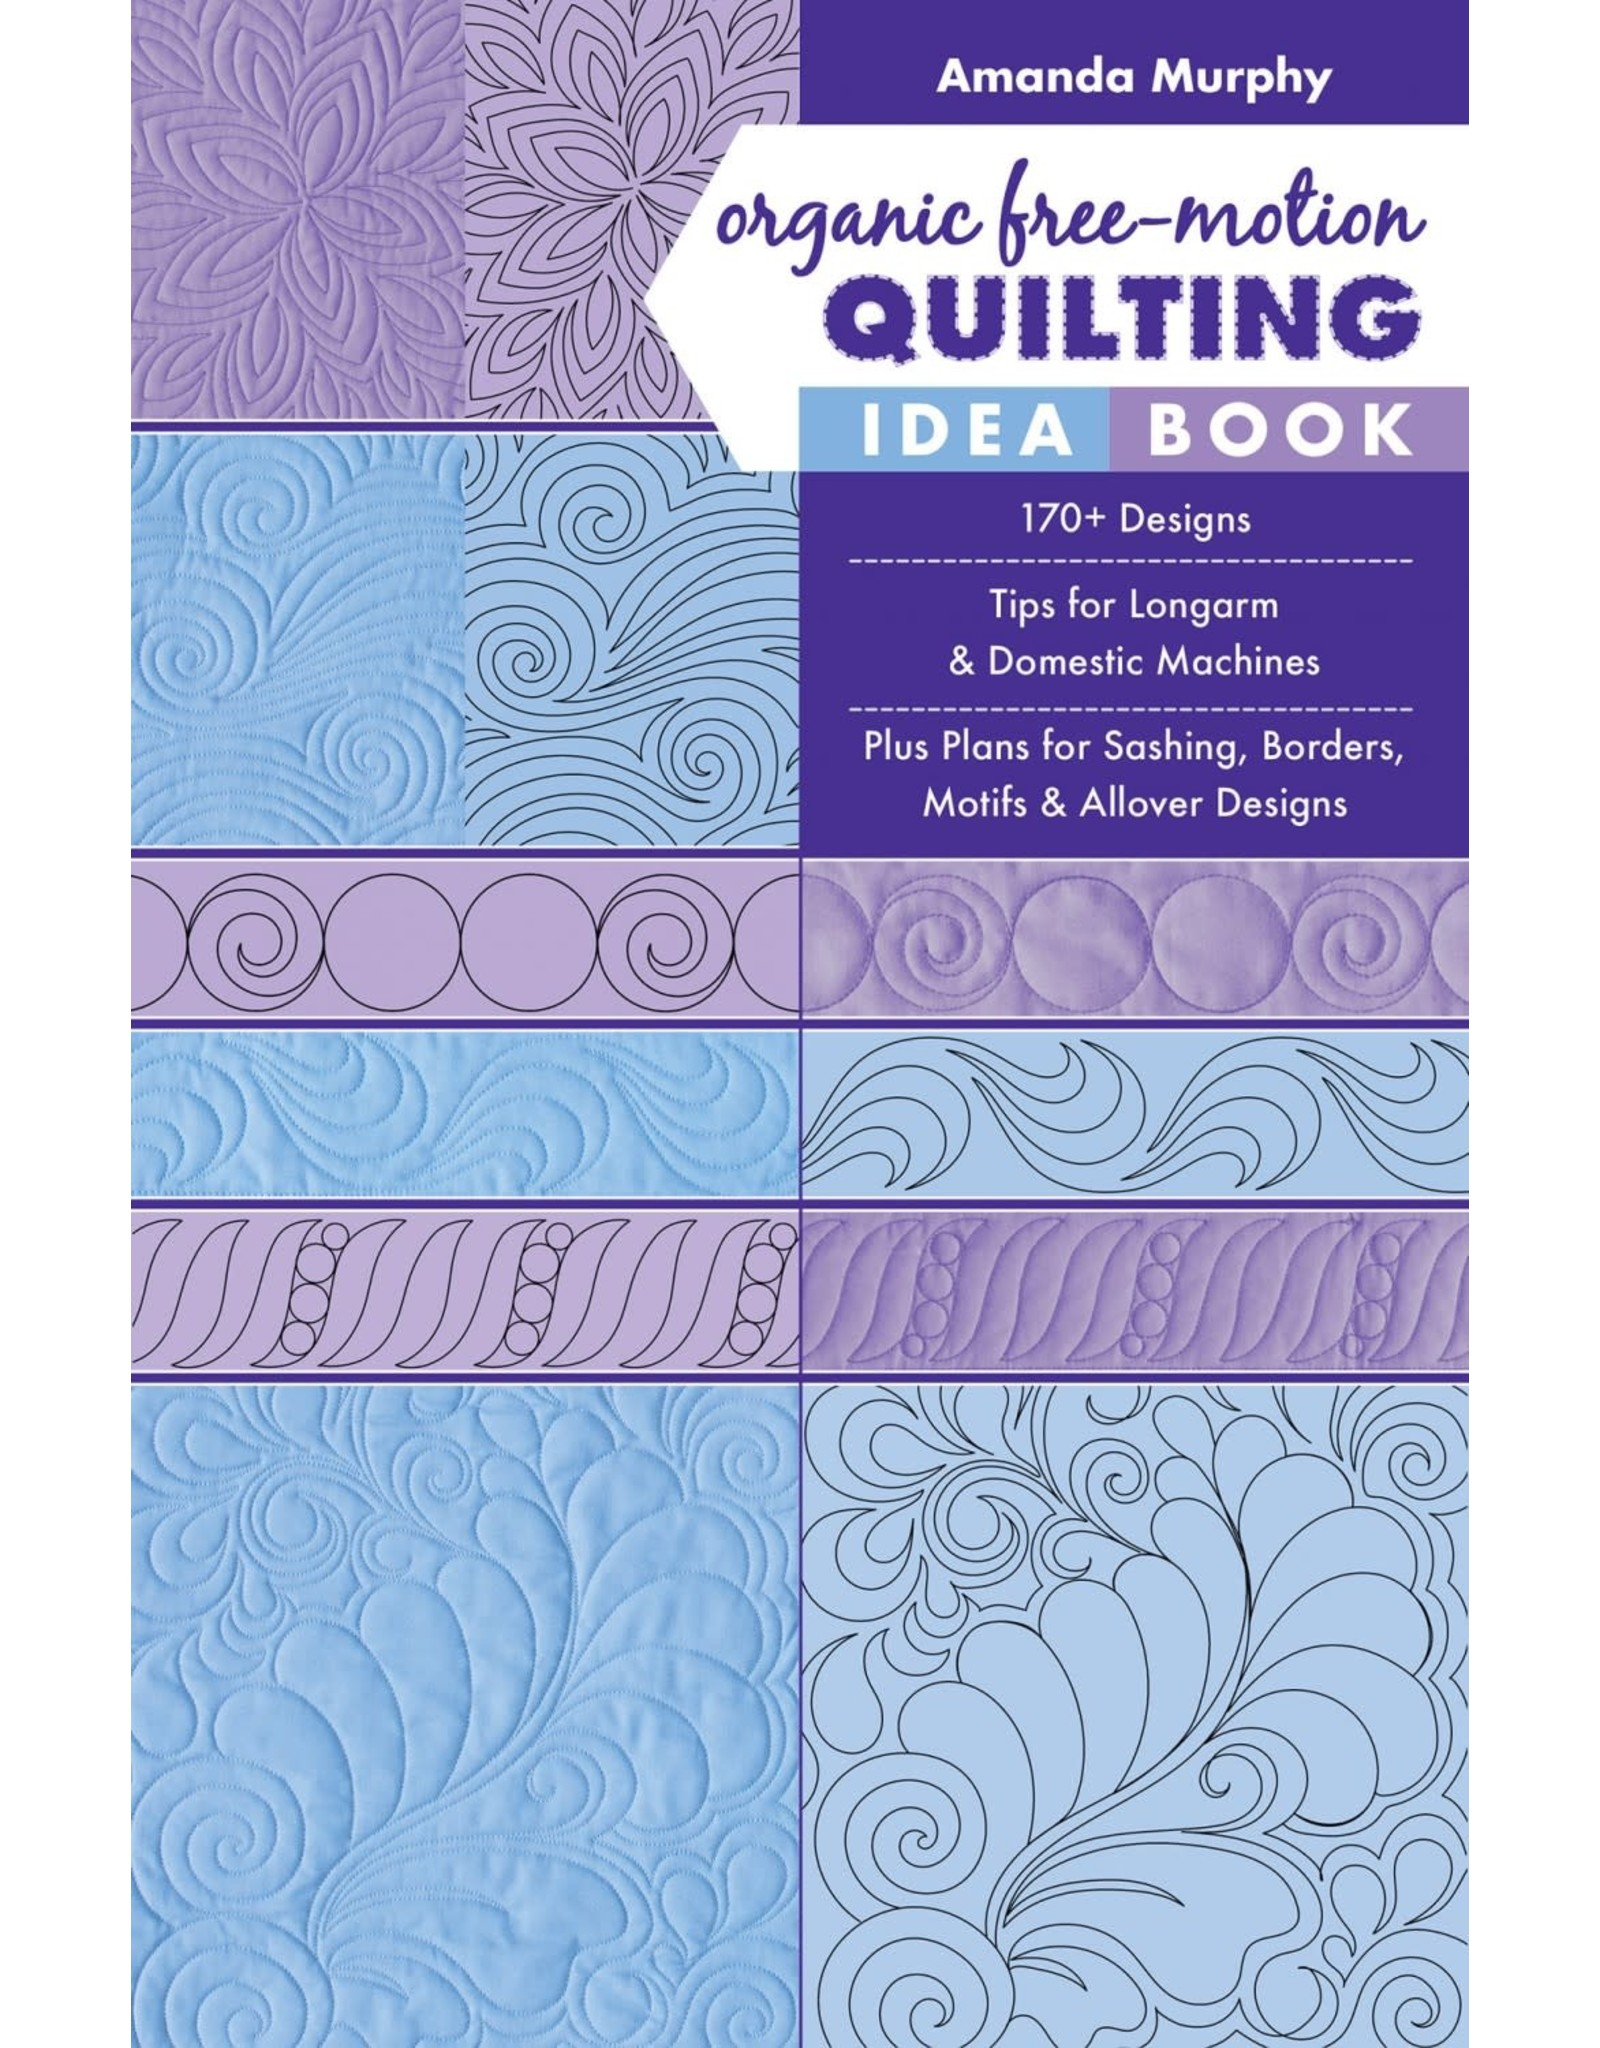 Organic Free-motion Quilting Idea Book - Amanda Murphy